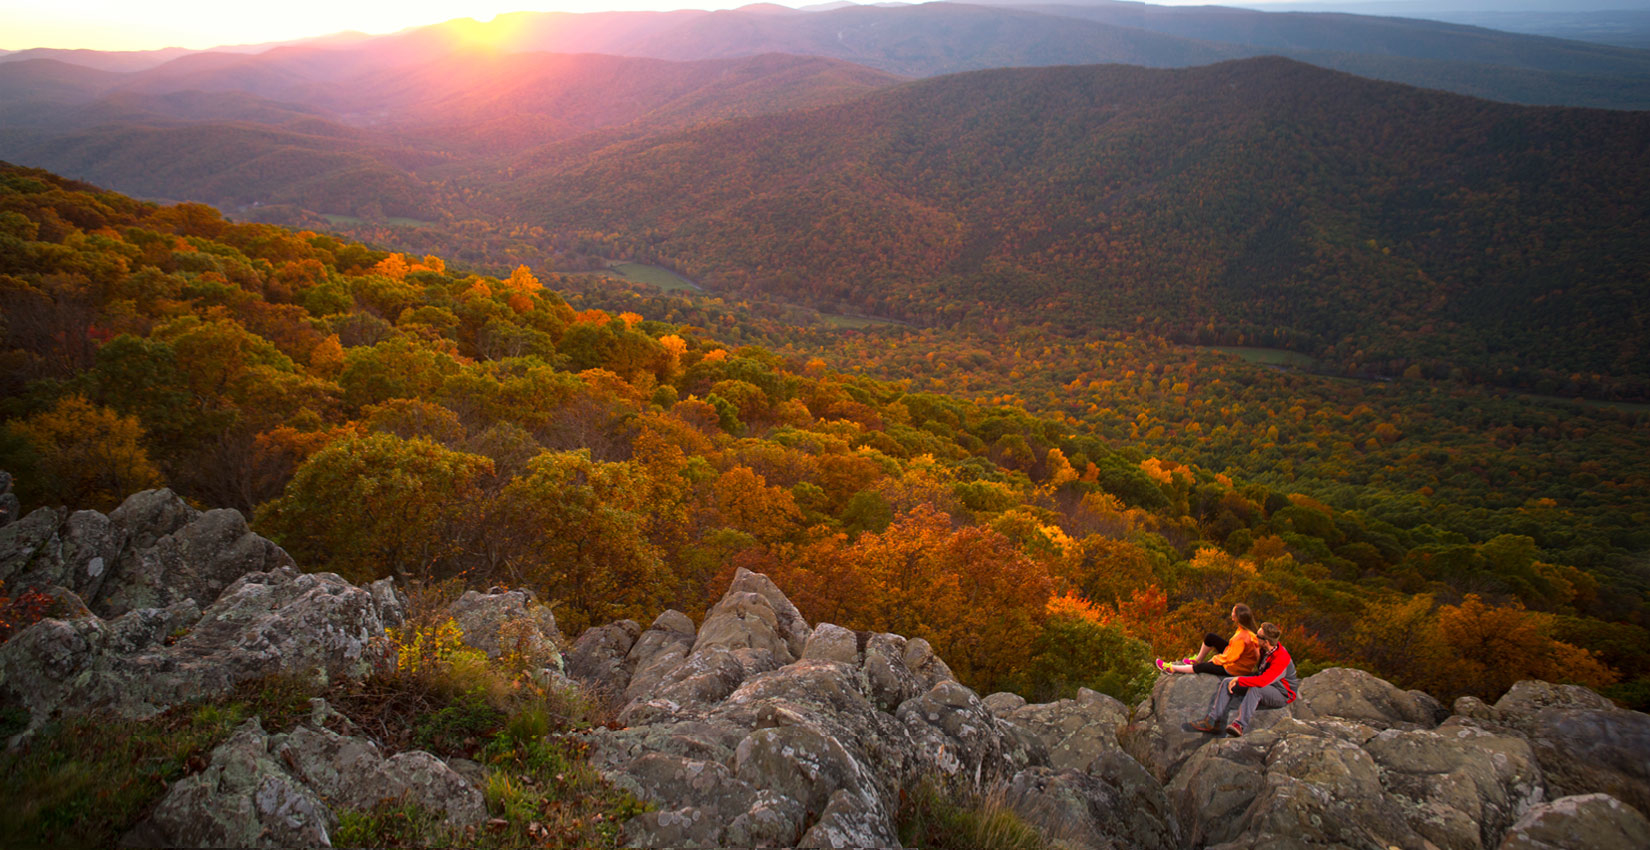 Over 30 miles of mountain  and valley trails, from easy to challenging, are in Wintergreen's boundaries offering waterfalls and wildflowers. Miles of more great trails are nearby, including part of the famous Appalachian Trail, the beautiful Crabtree Falls and the popular Humpback Rocks.  Learn more.